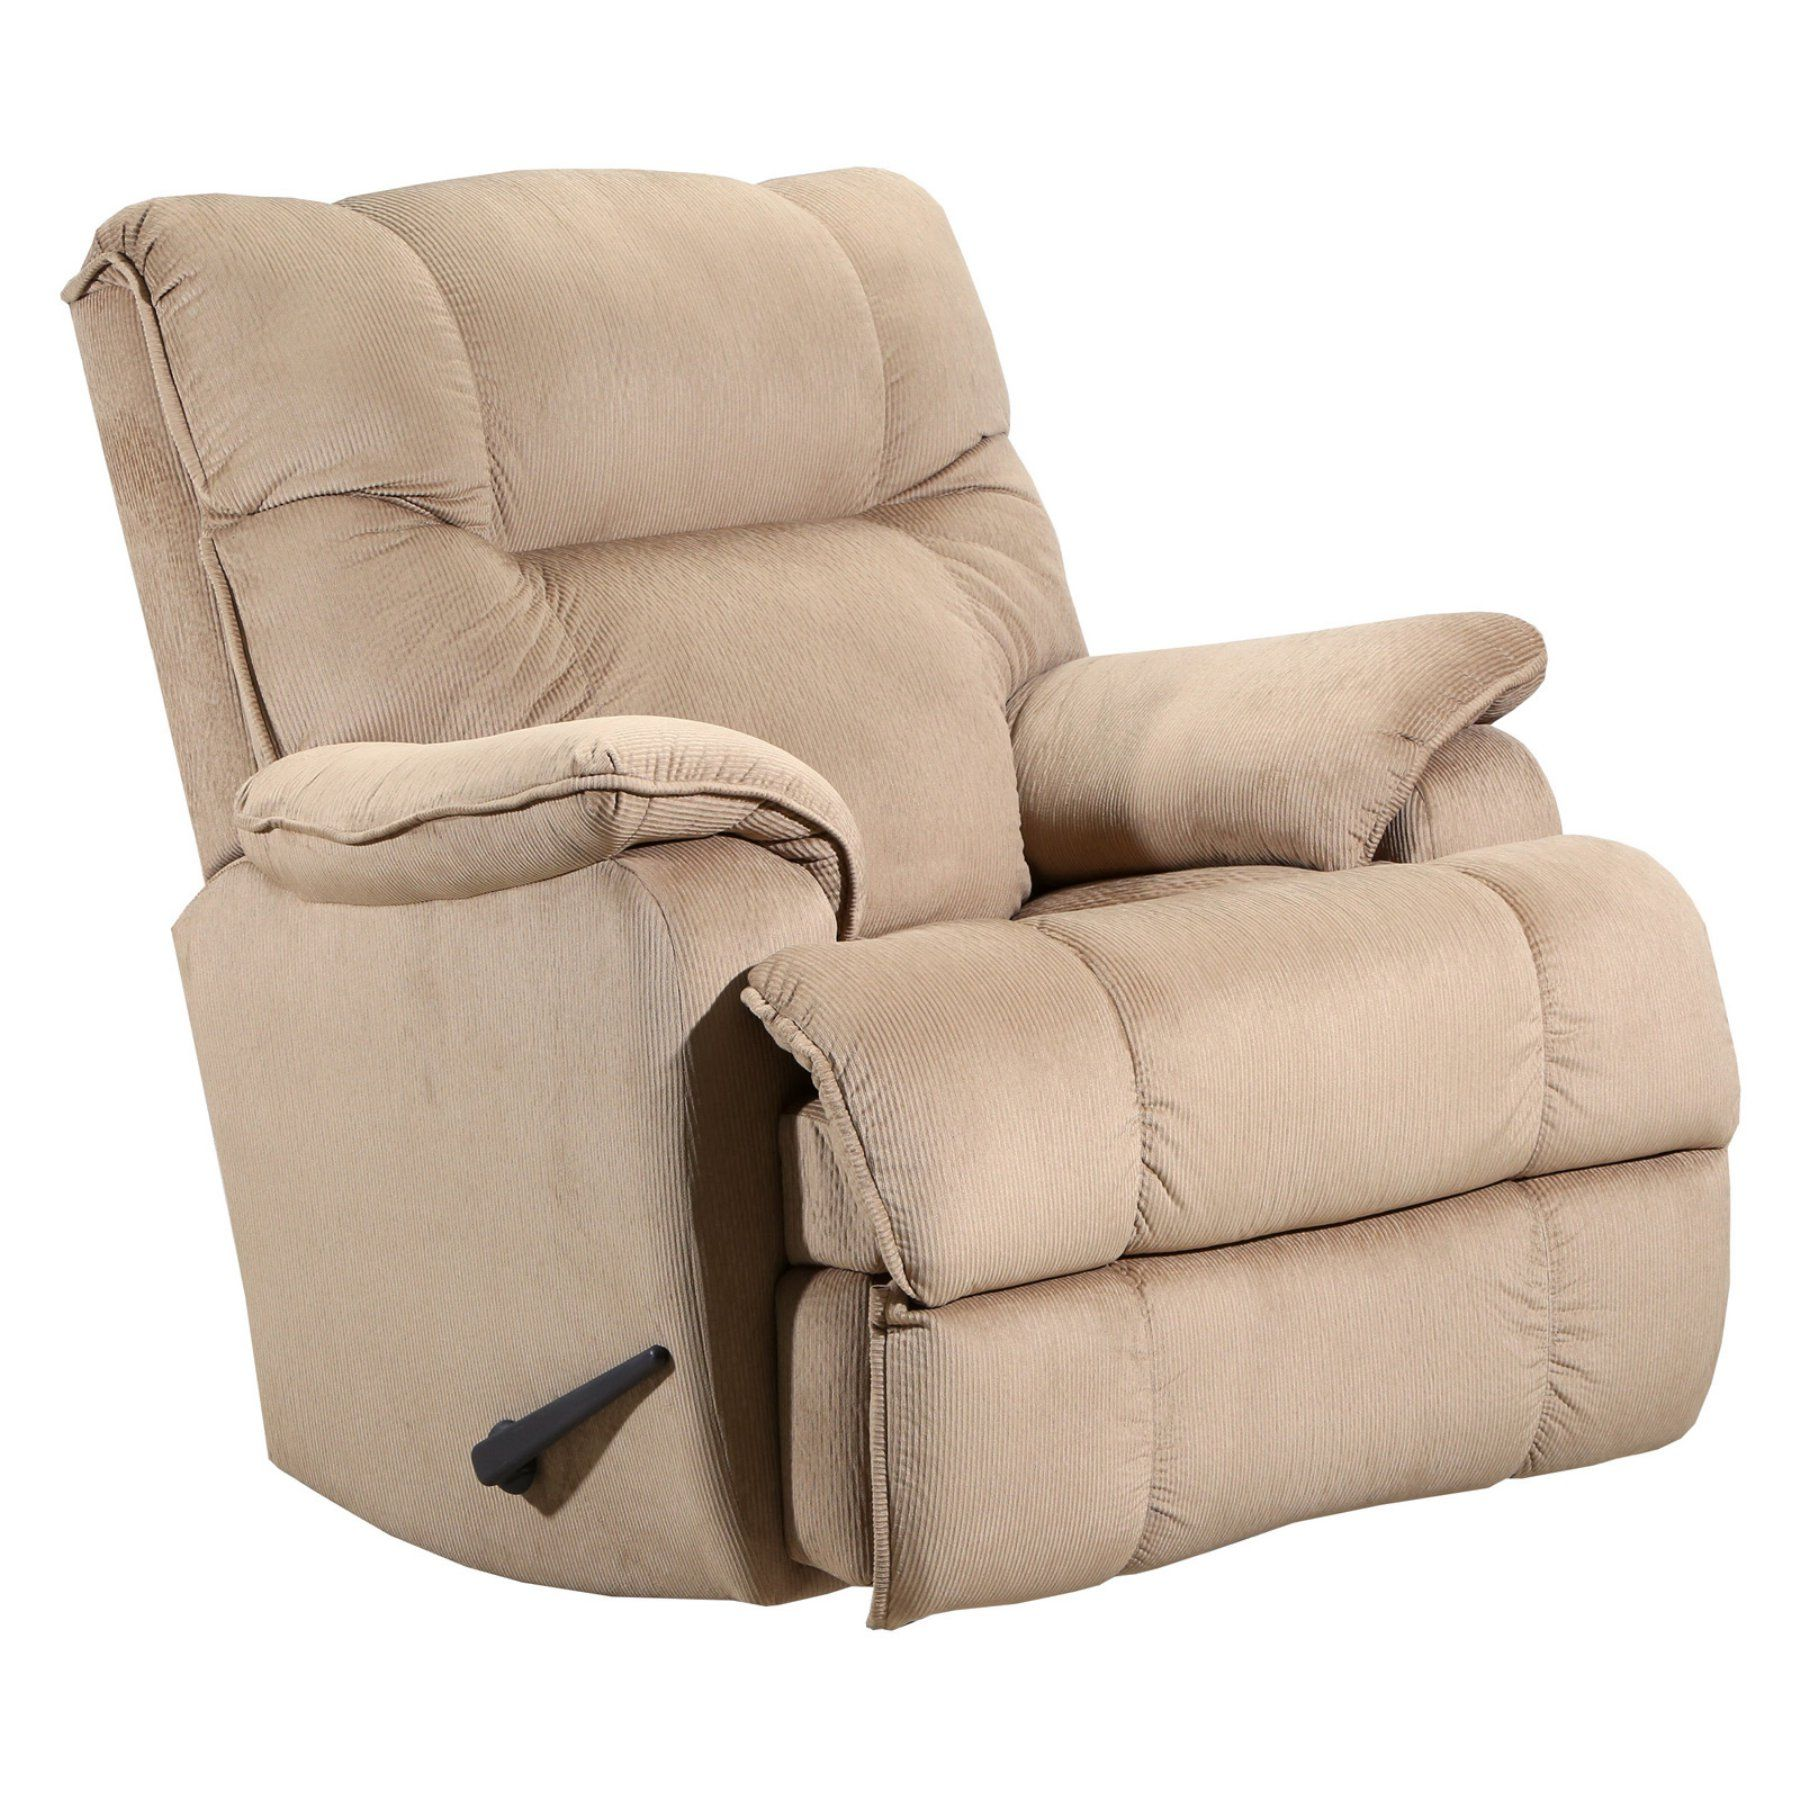 Outstanding Lane 1413 Rancho Wall Saver Recliner Products In 2019 Beatyapartments Chair Design Images Beatyapartmentscom